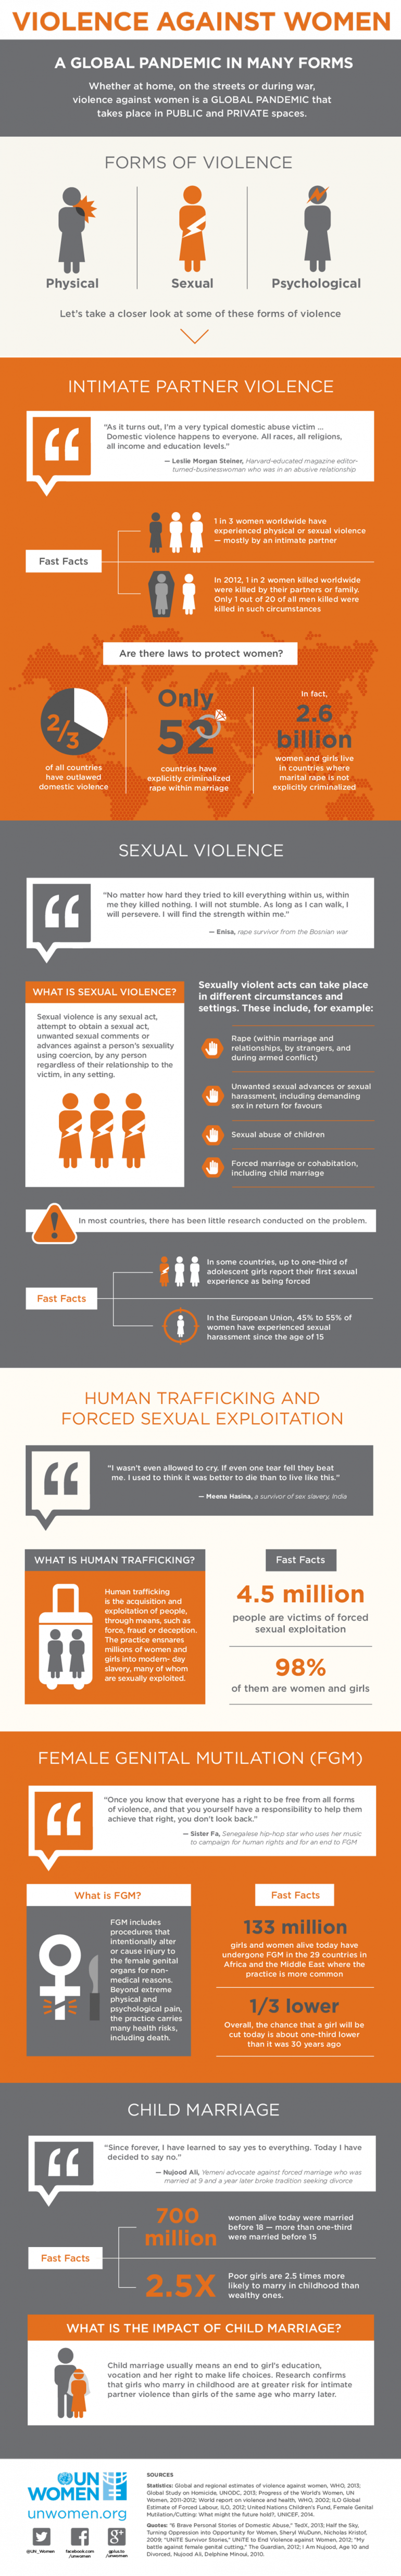 infographic-violence-against-women-en